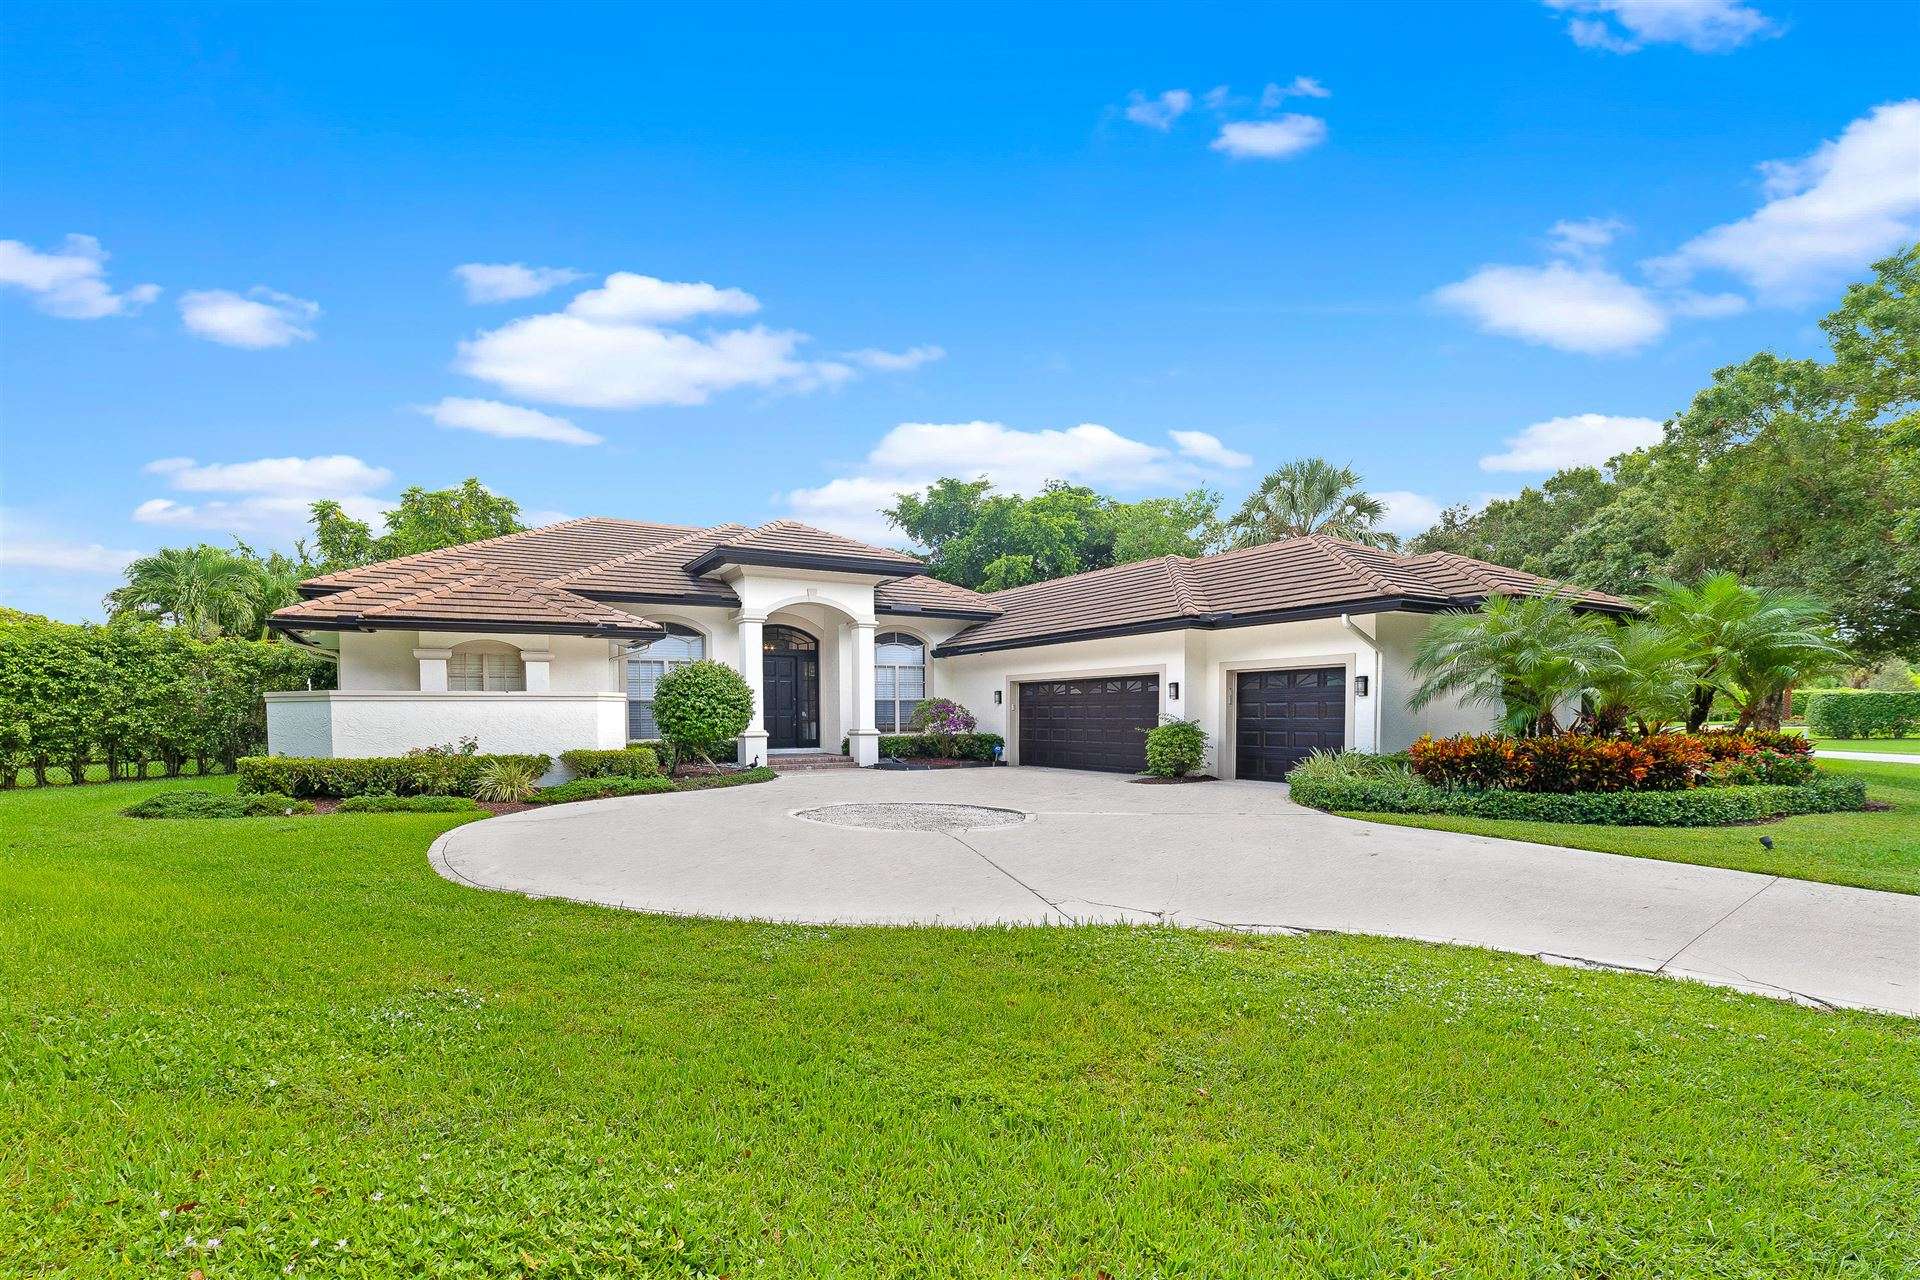 Photo of 5715 Whirlaway Road, Palm Beach Gardens, FL 33418 (MLS # RX-10662303)